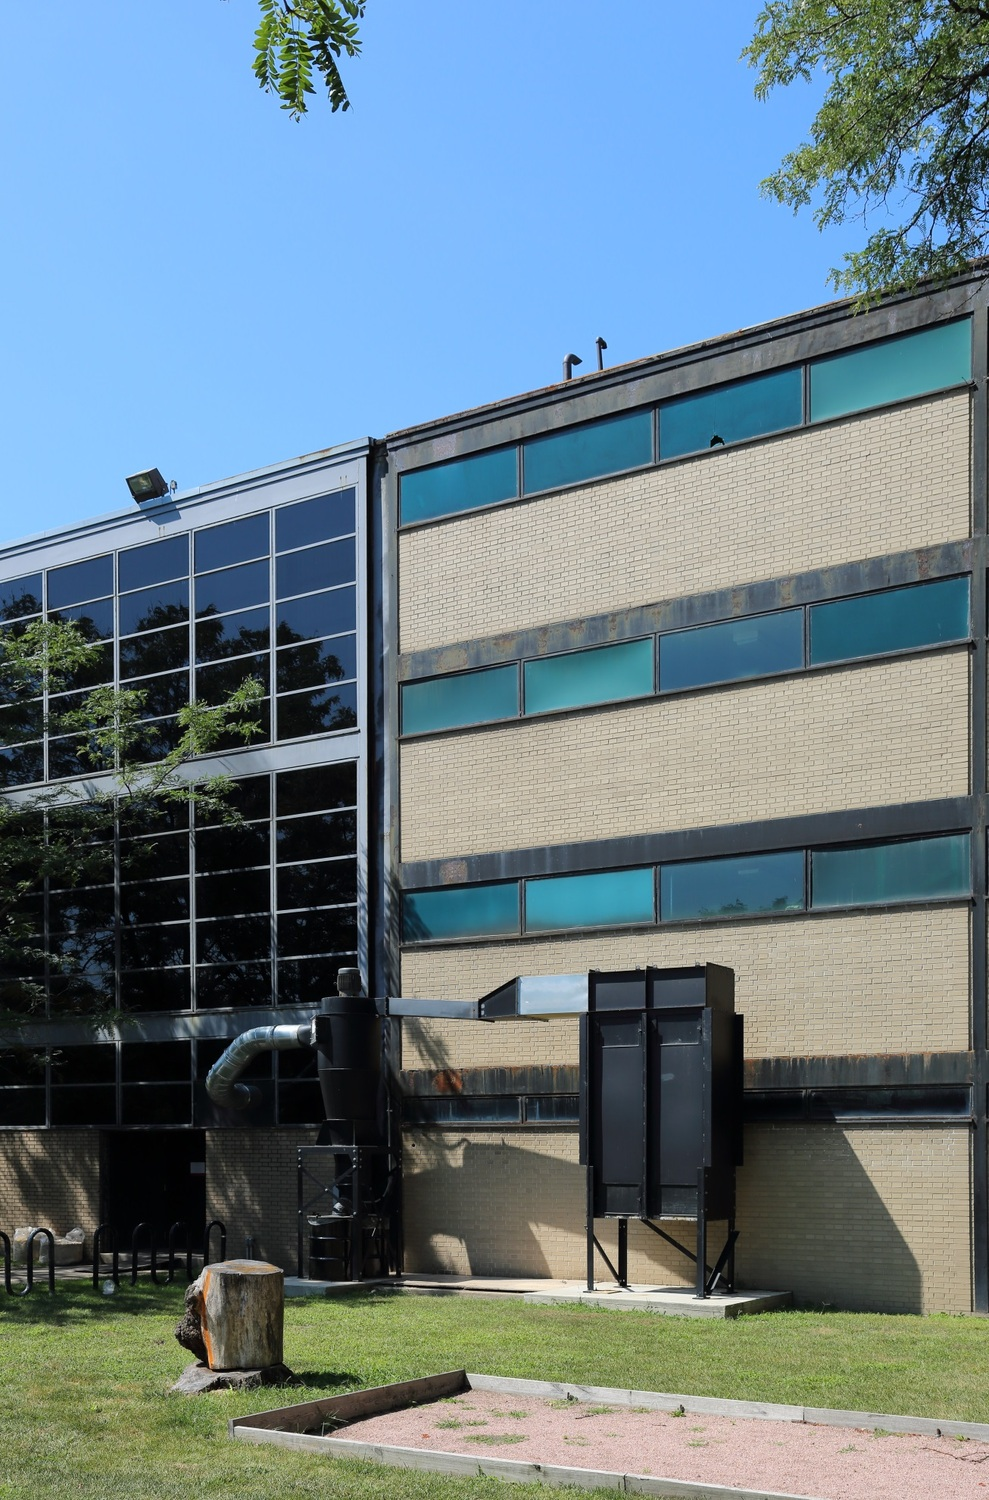 The seam between the original Metals Research Building and the 1958 addition